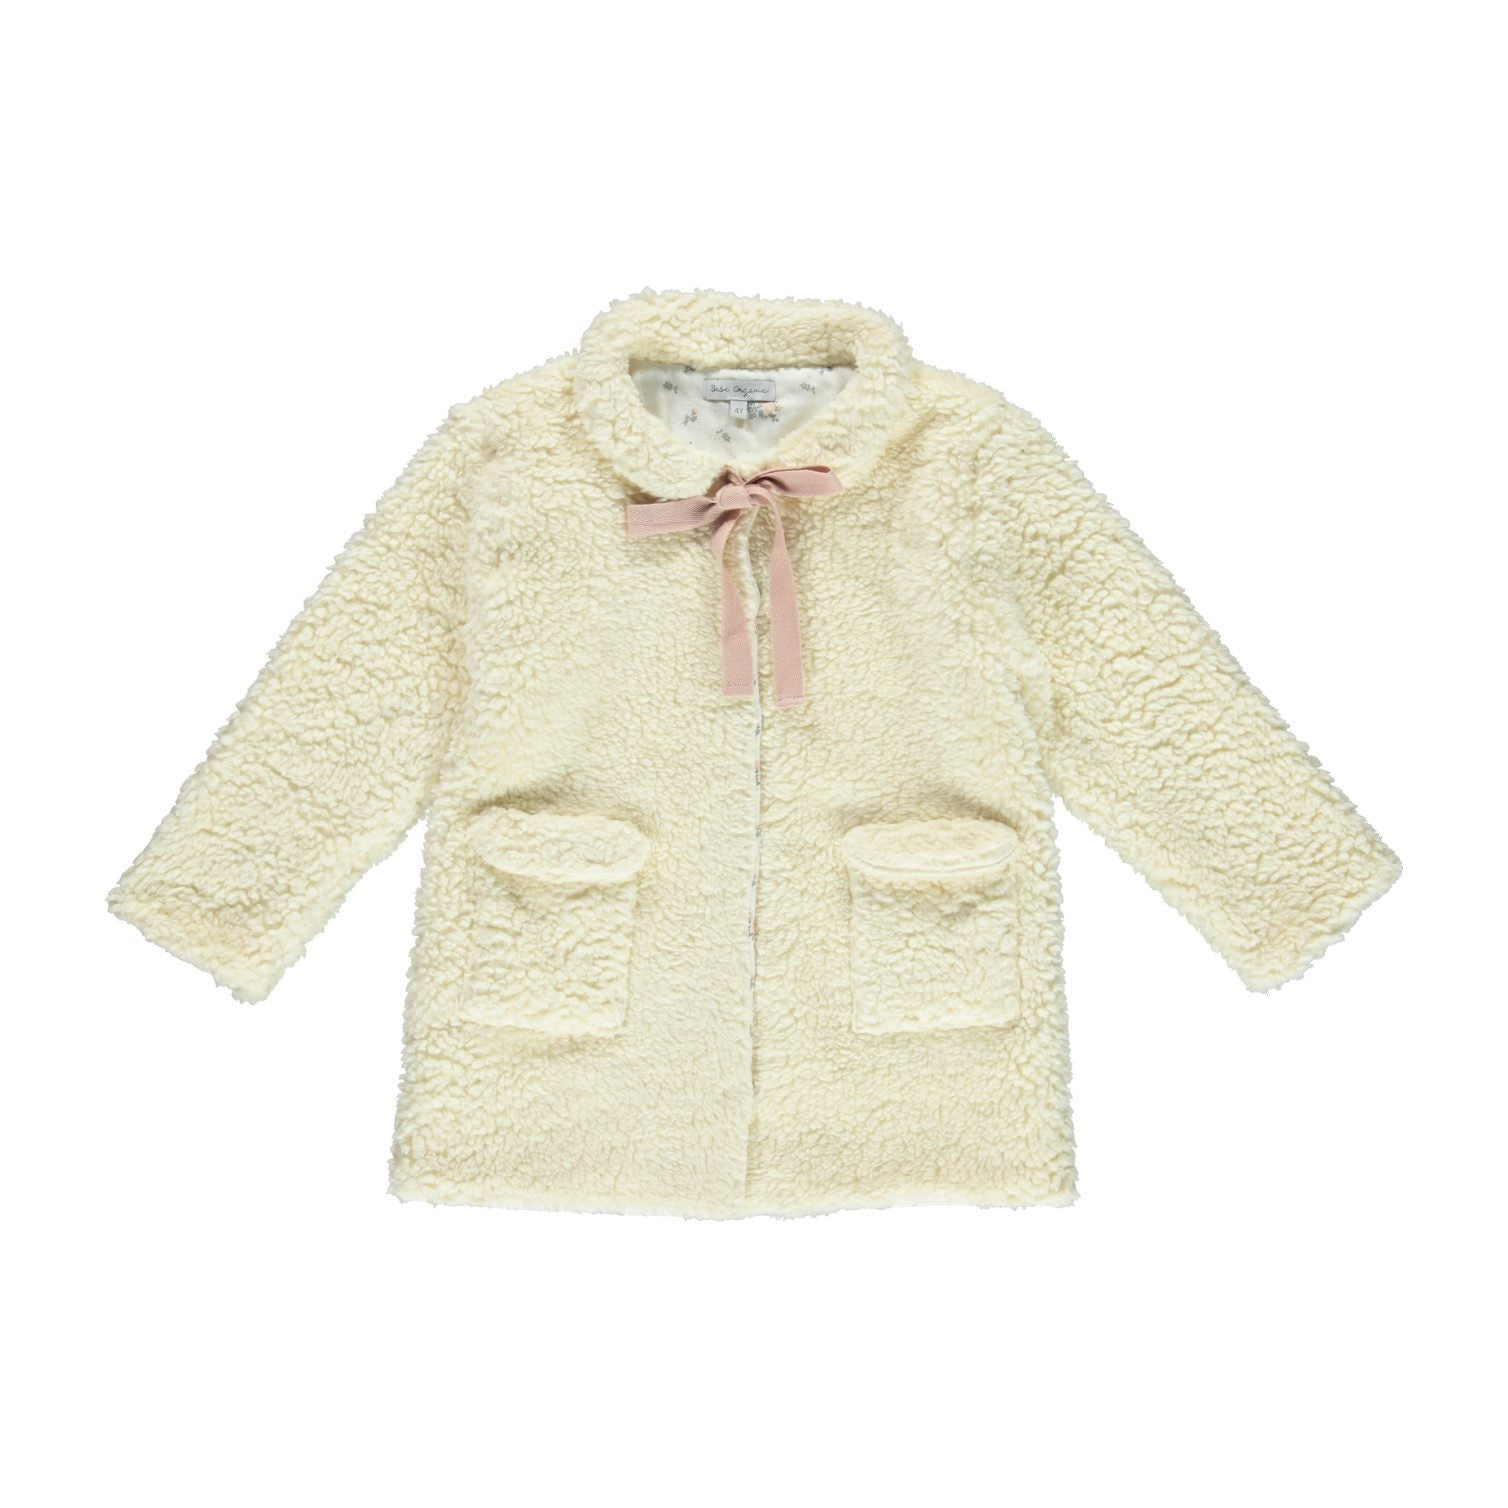 OLIVIA JACKET, NATURAL | BEBE ORGANIC - Spinel Boutique